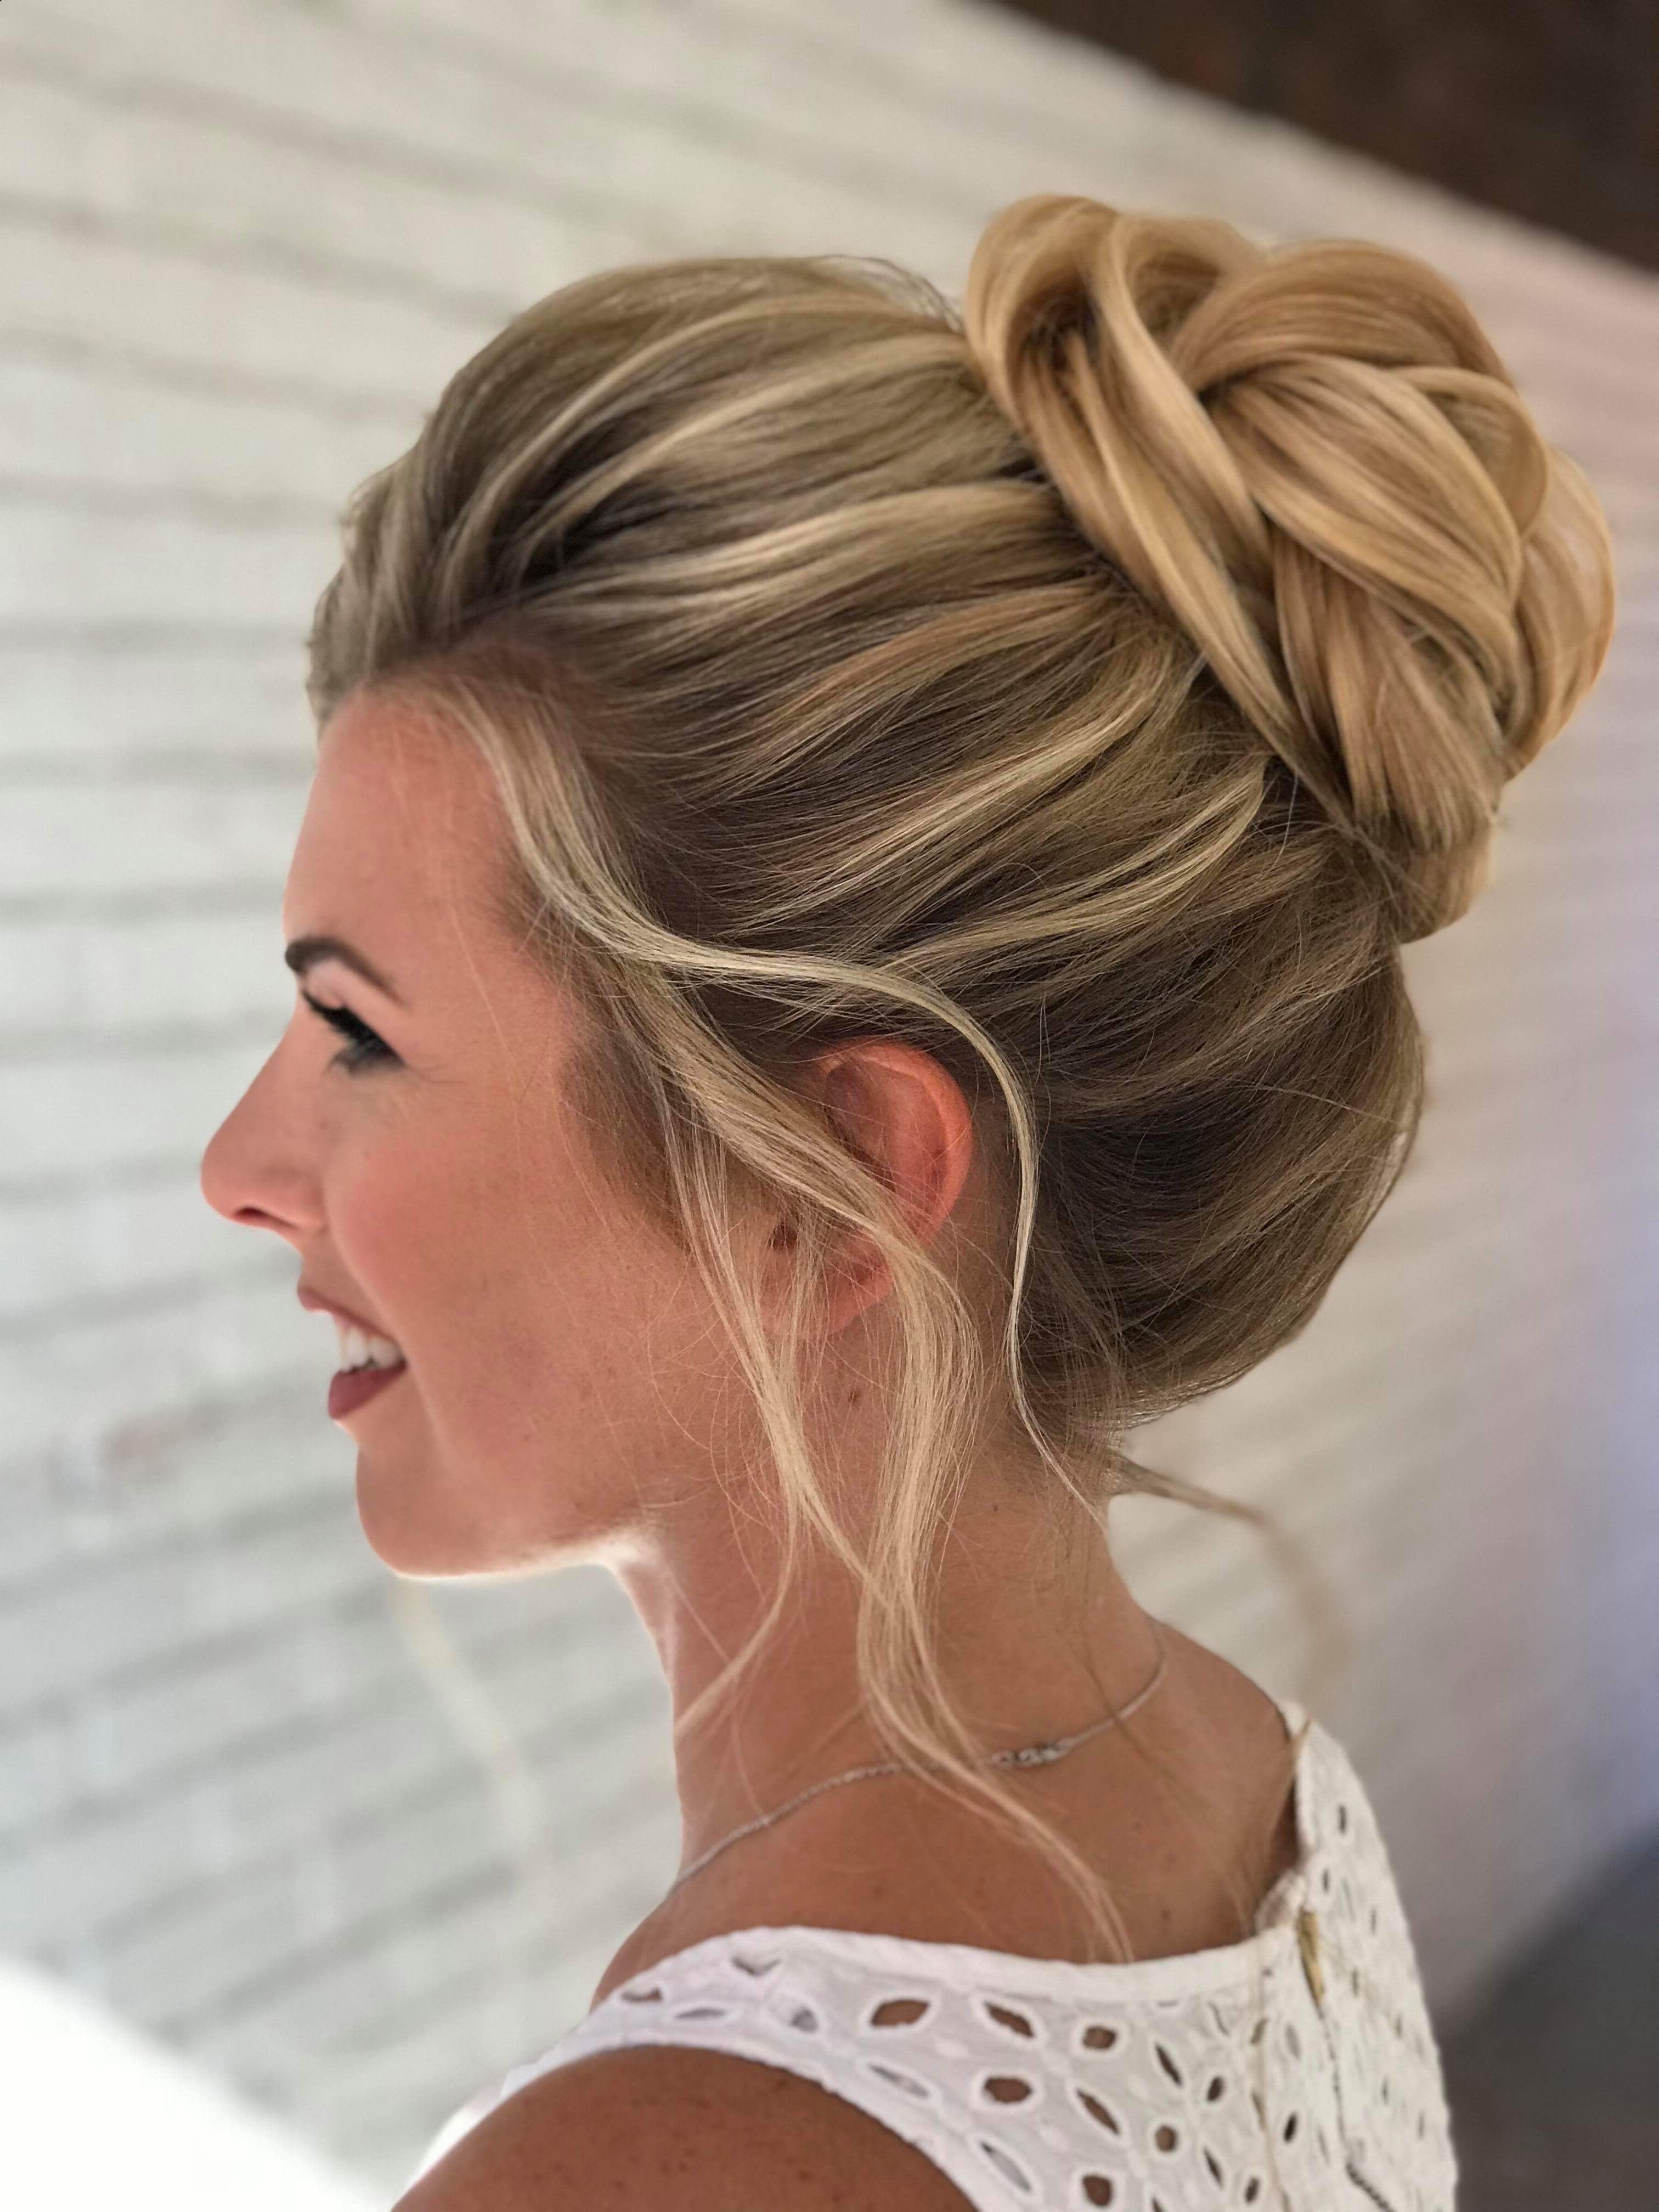 Popular Highlighted Braided Crown Bridal Hairstyles Throughout Wedding Hairstyle High Bun On Highlighted Blonde Hair (View 15 of 20)